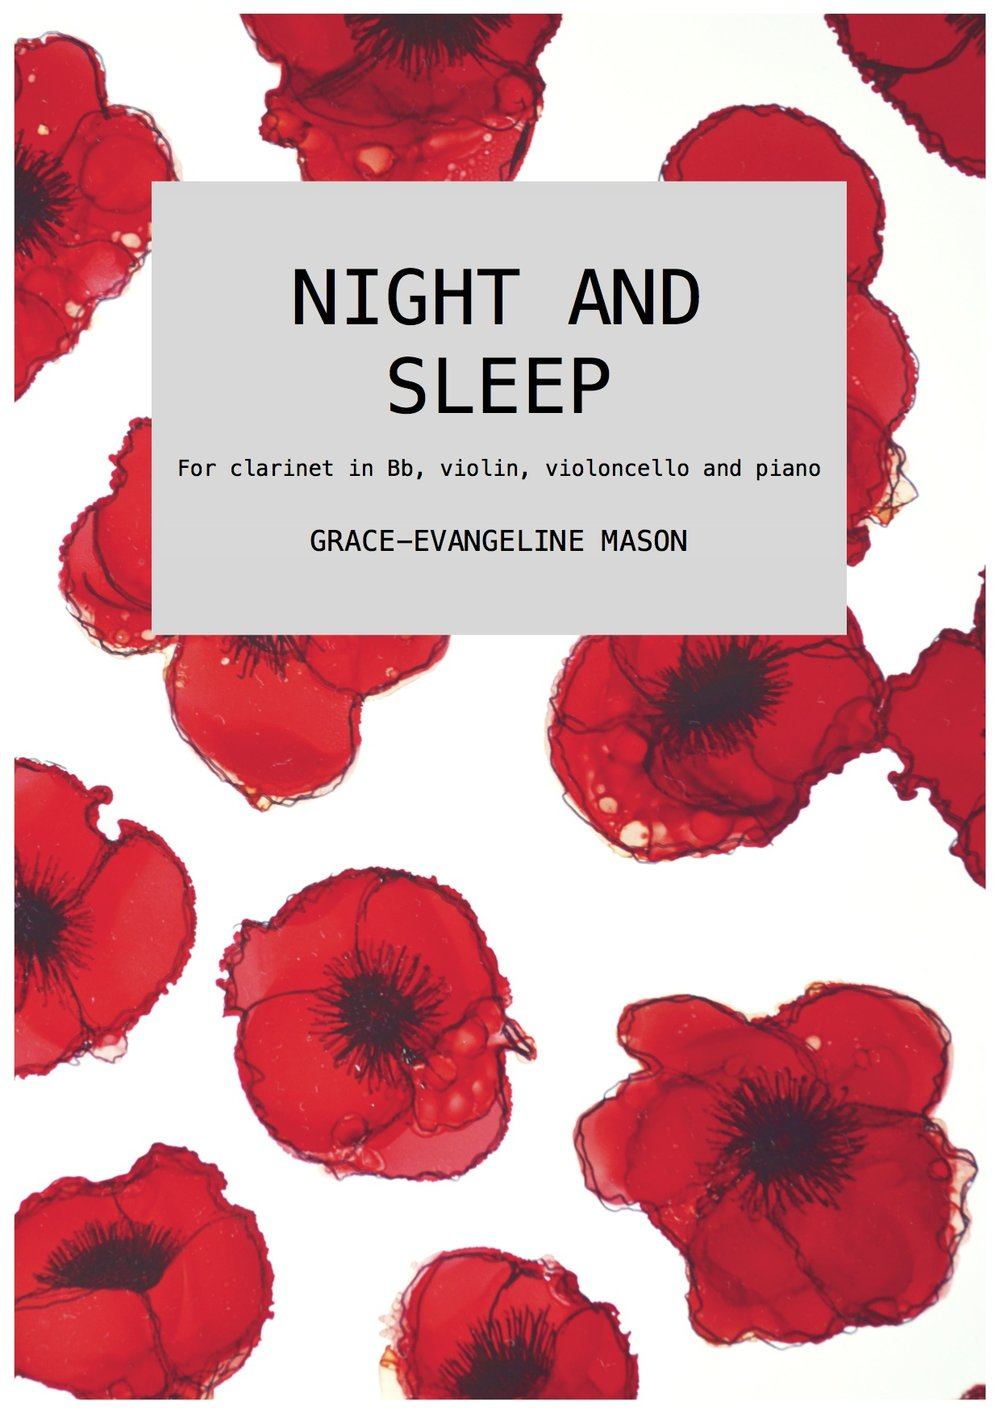 'NIGHT AND SLEEP' (2017) - For clarinet in Bb, violin, violoncello and pianoString Orchestra arrangement also available.Duration: 8'30